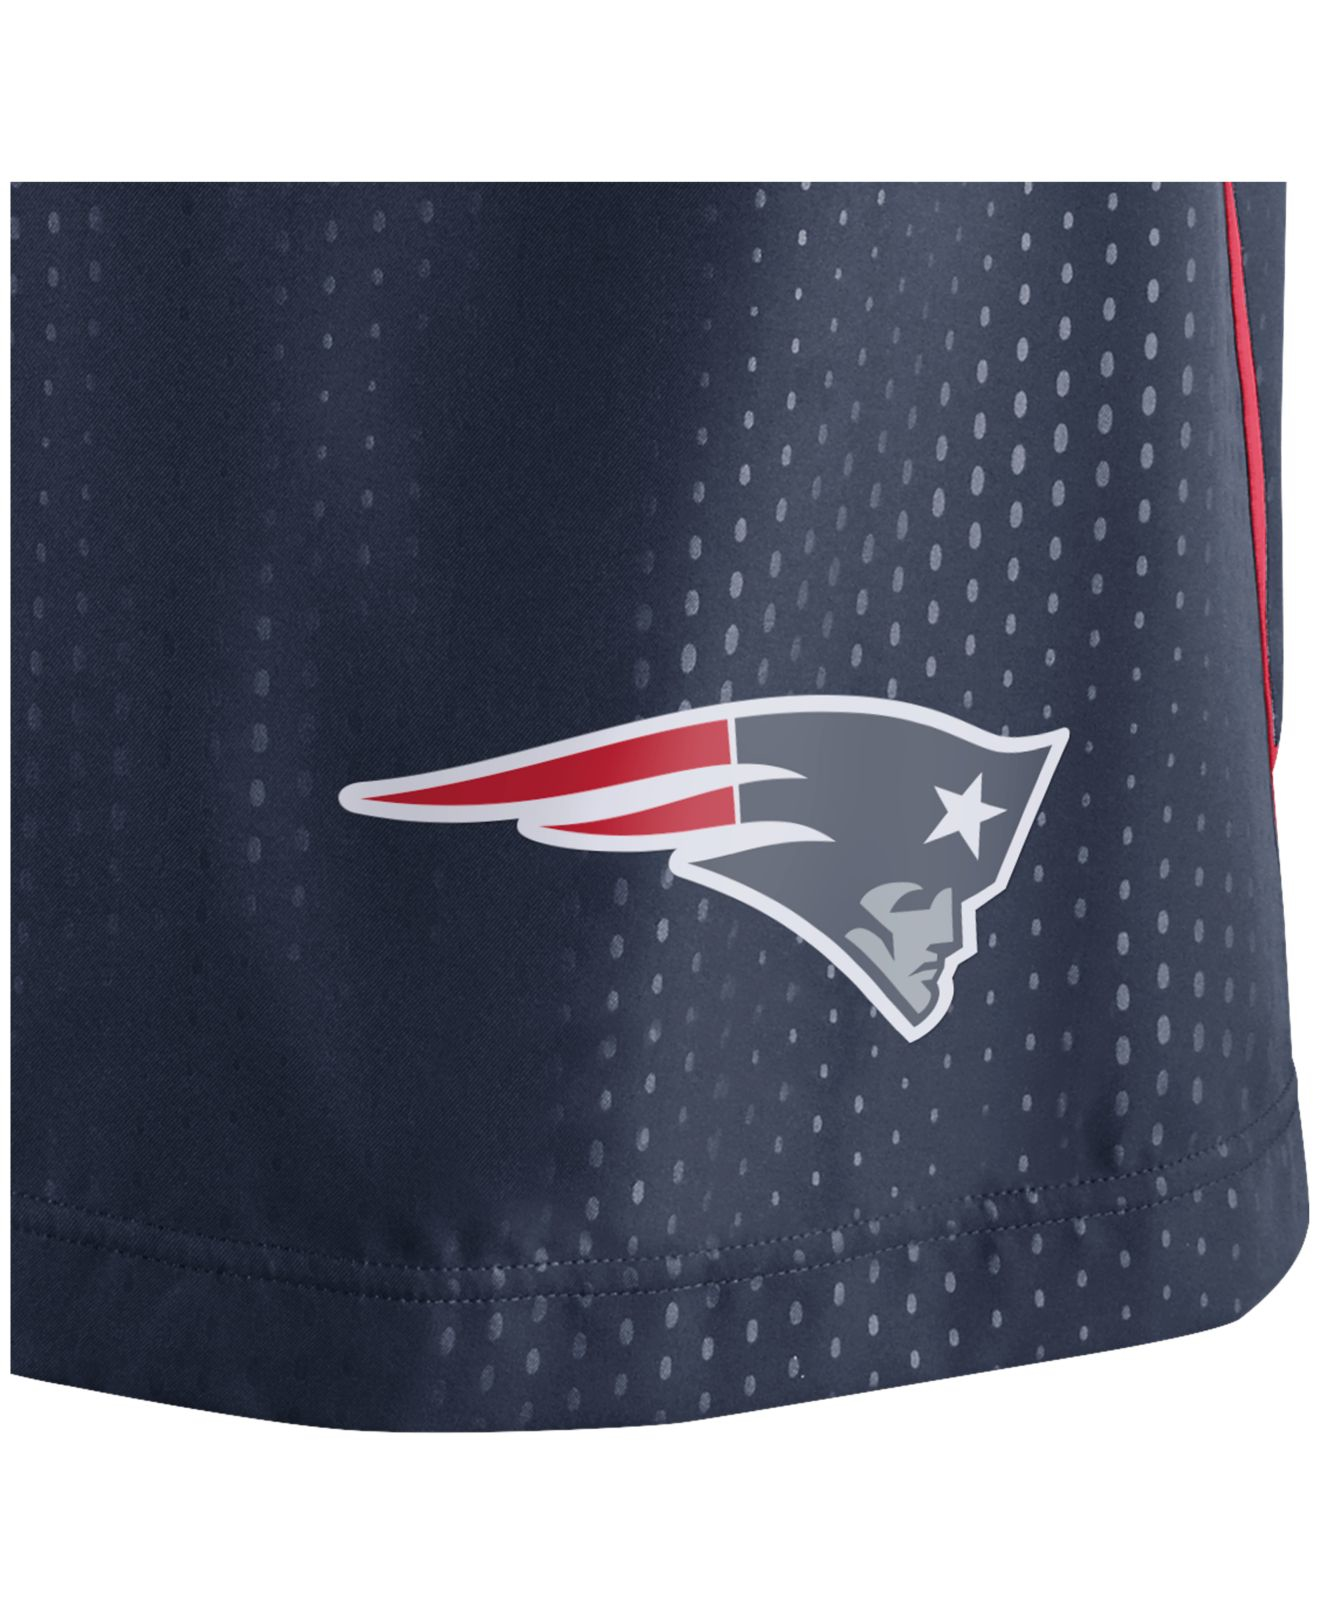 Lyst - Nike Men s New England Patriots Dri-fit Fly Xl 3.0 Shorts in ... 5c25b01f4